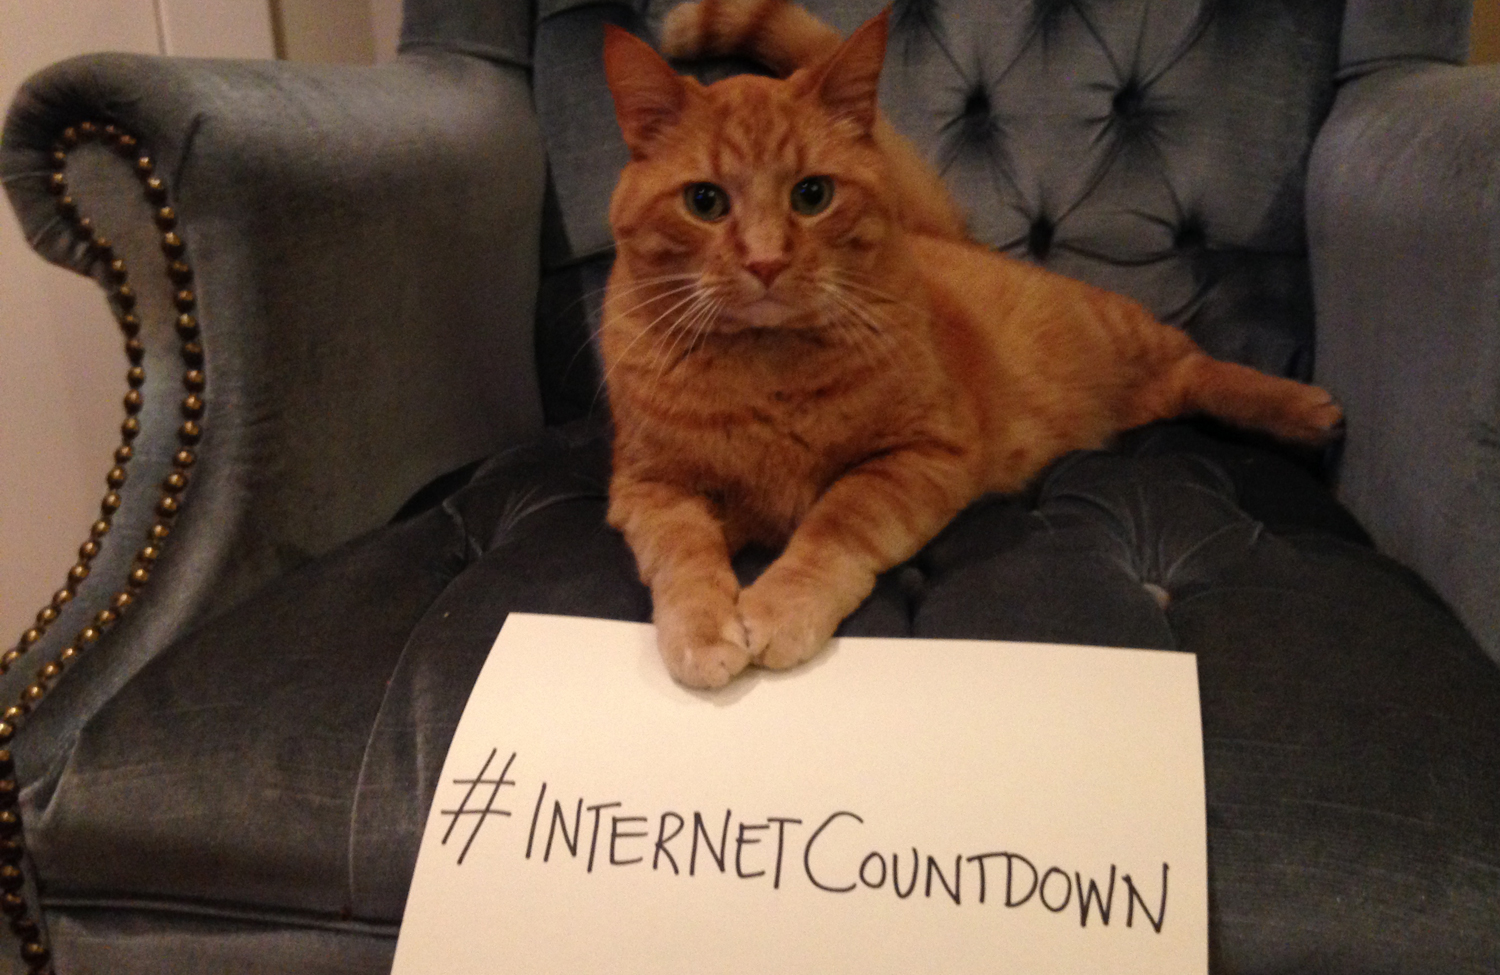 net-neutrality-cat